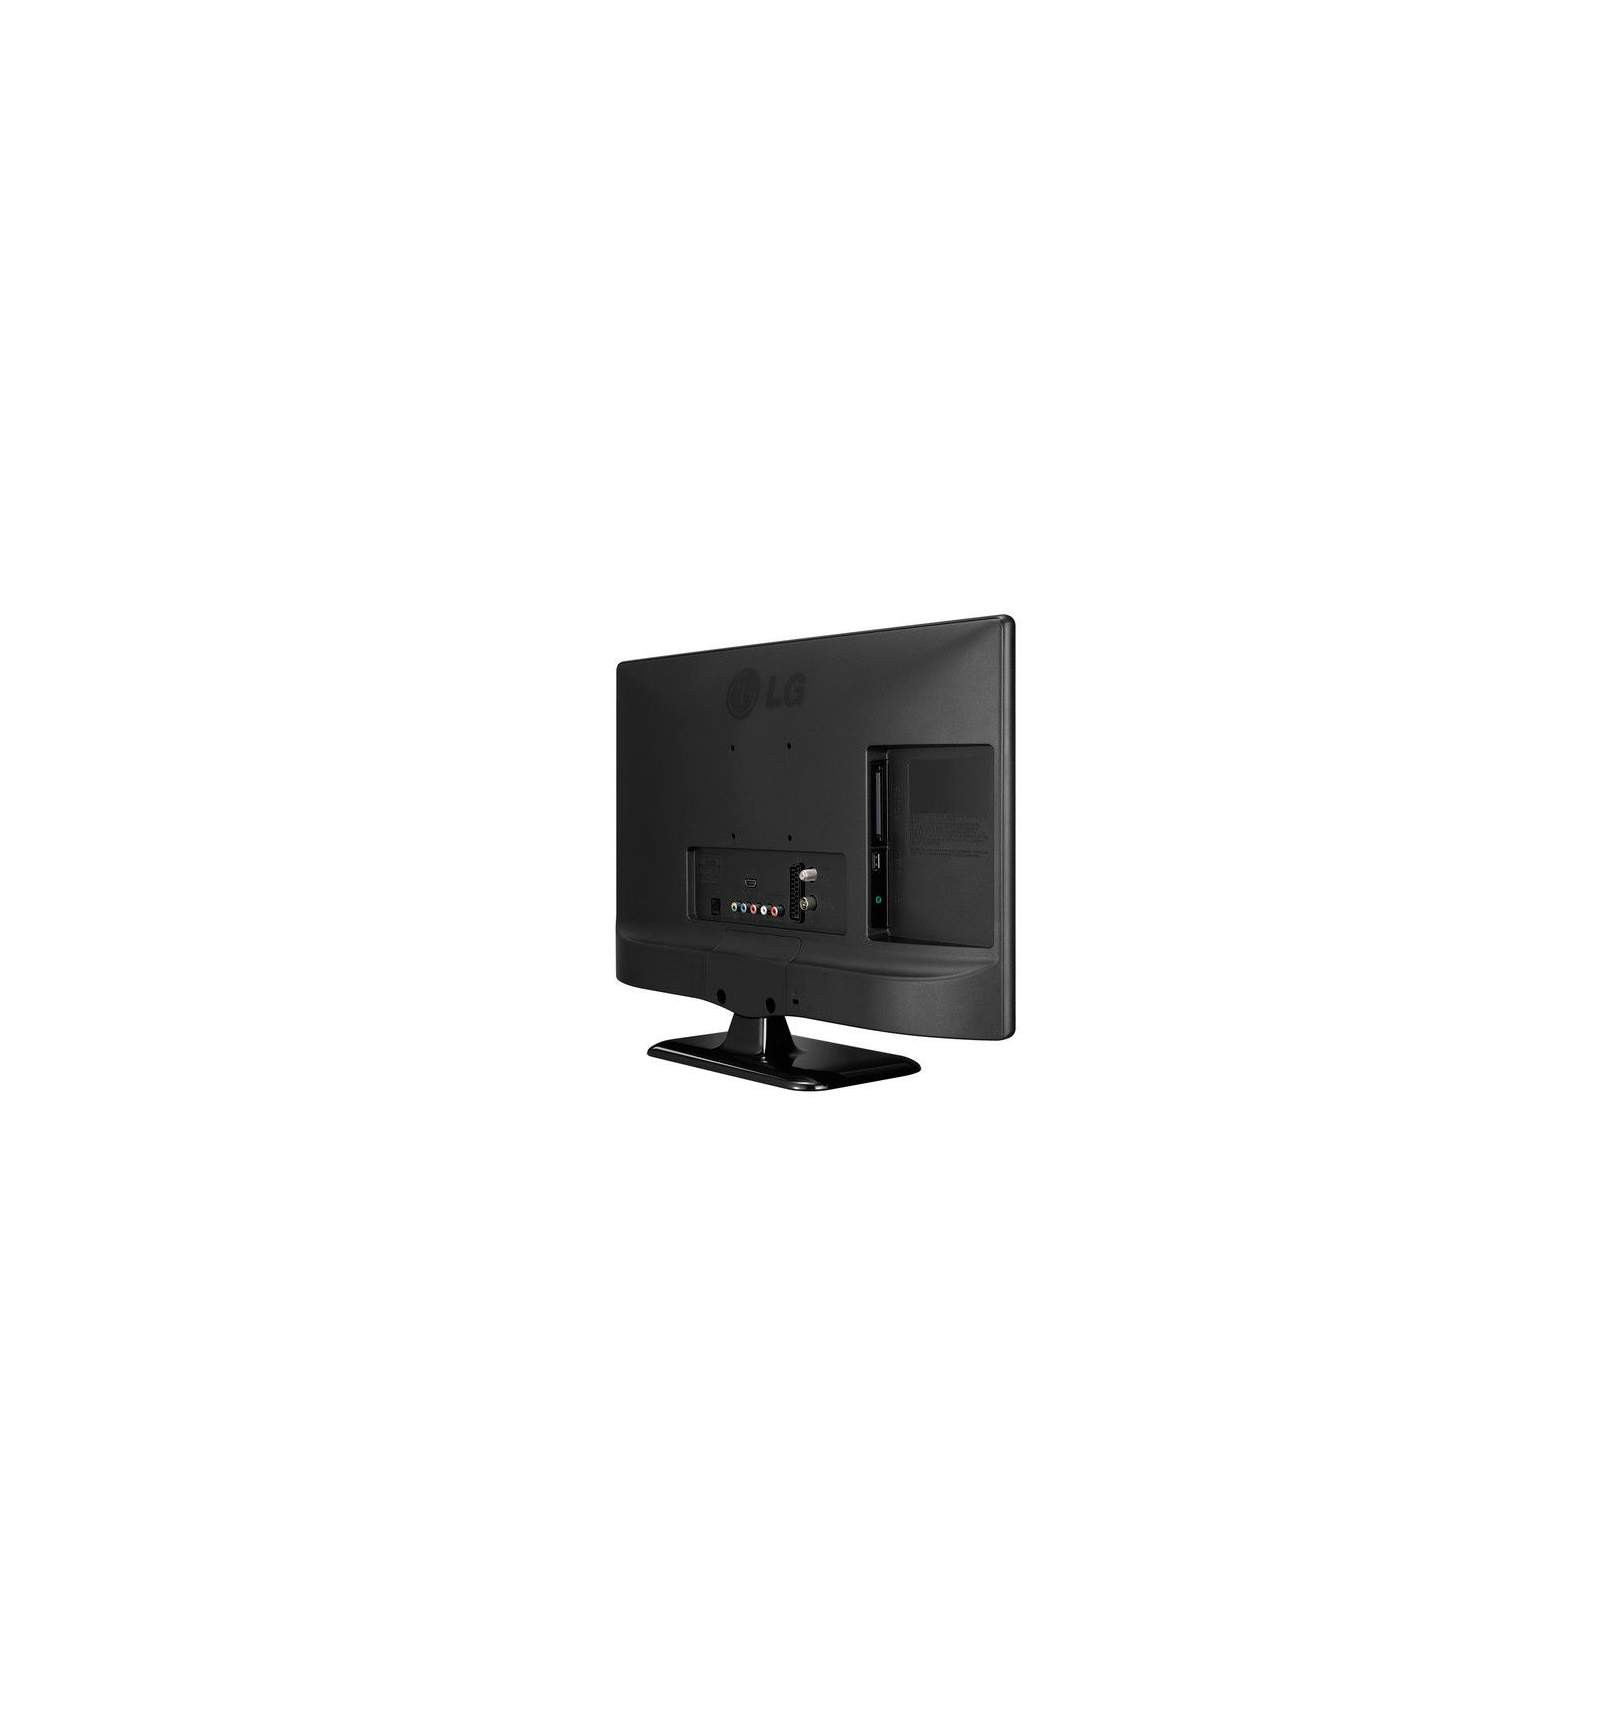 Televisor 32 Pulgadas Full Hd Lujo 22mt44dp Pz Televisor Monitor Full Hd Led Lg Of 34  Brillante Televisor 32 Pulgadas Full Hd